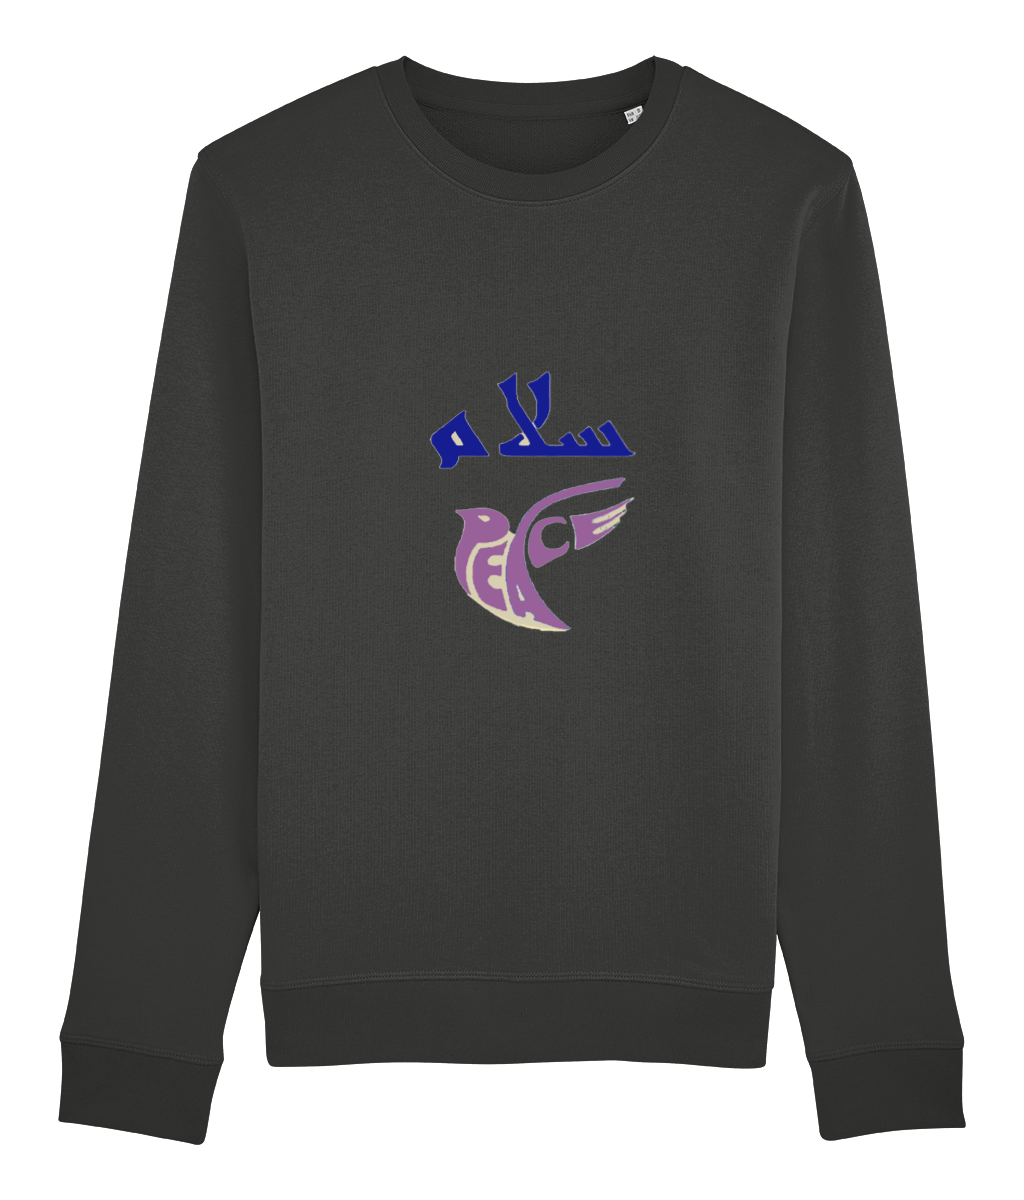 Sweatshirt - Peace - Arabic & English